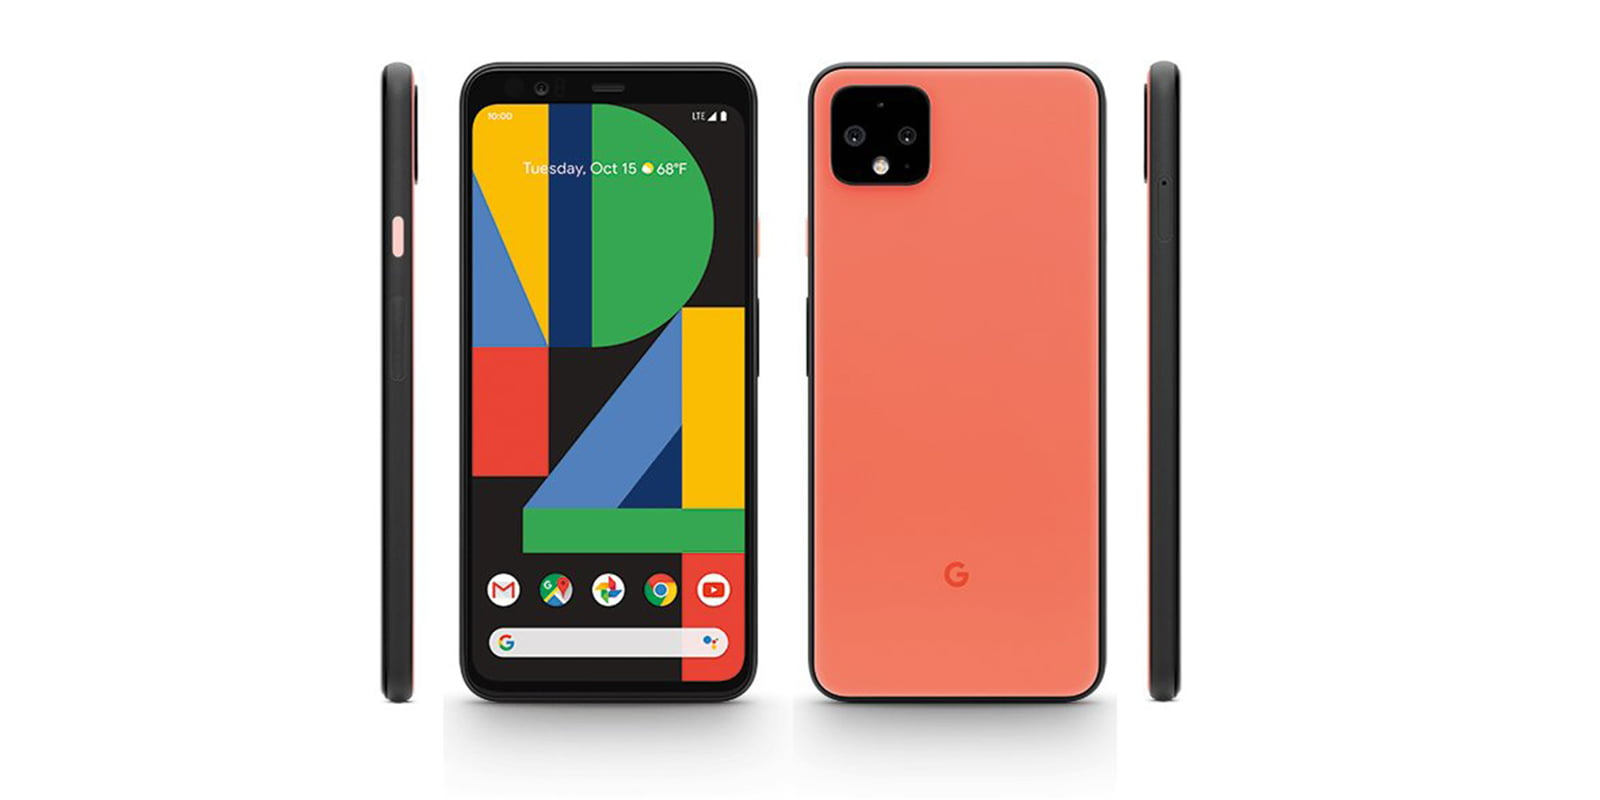 Pixel 4 Oh So Orange color